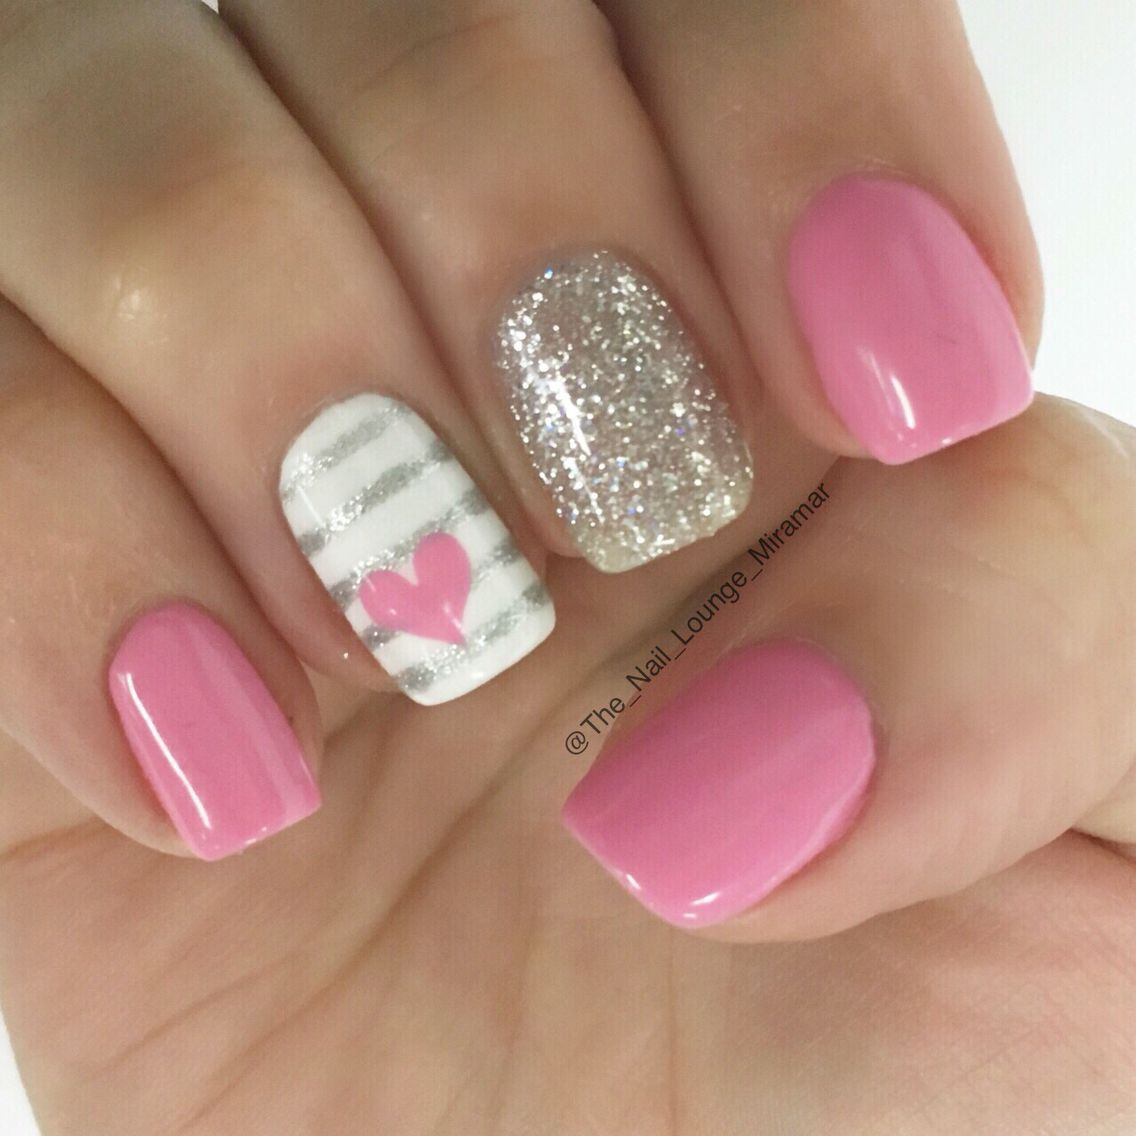 NAIL DESIGNS I Thought ...